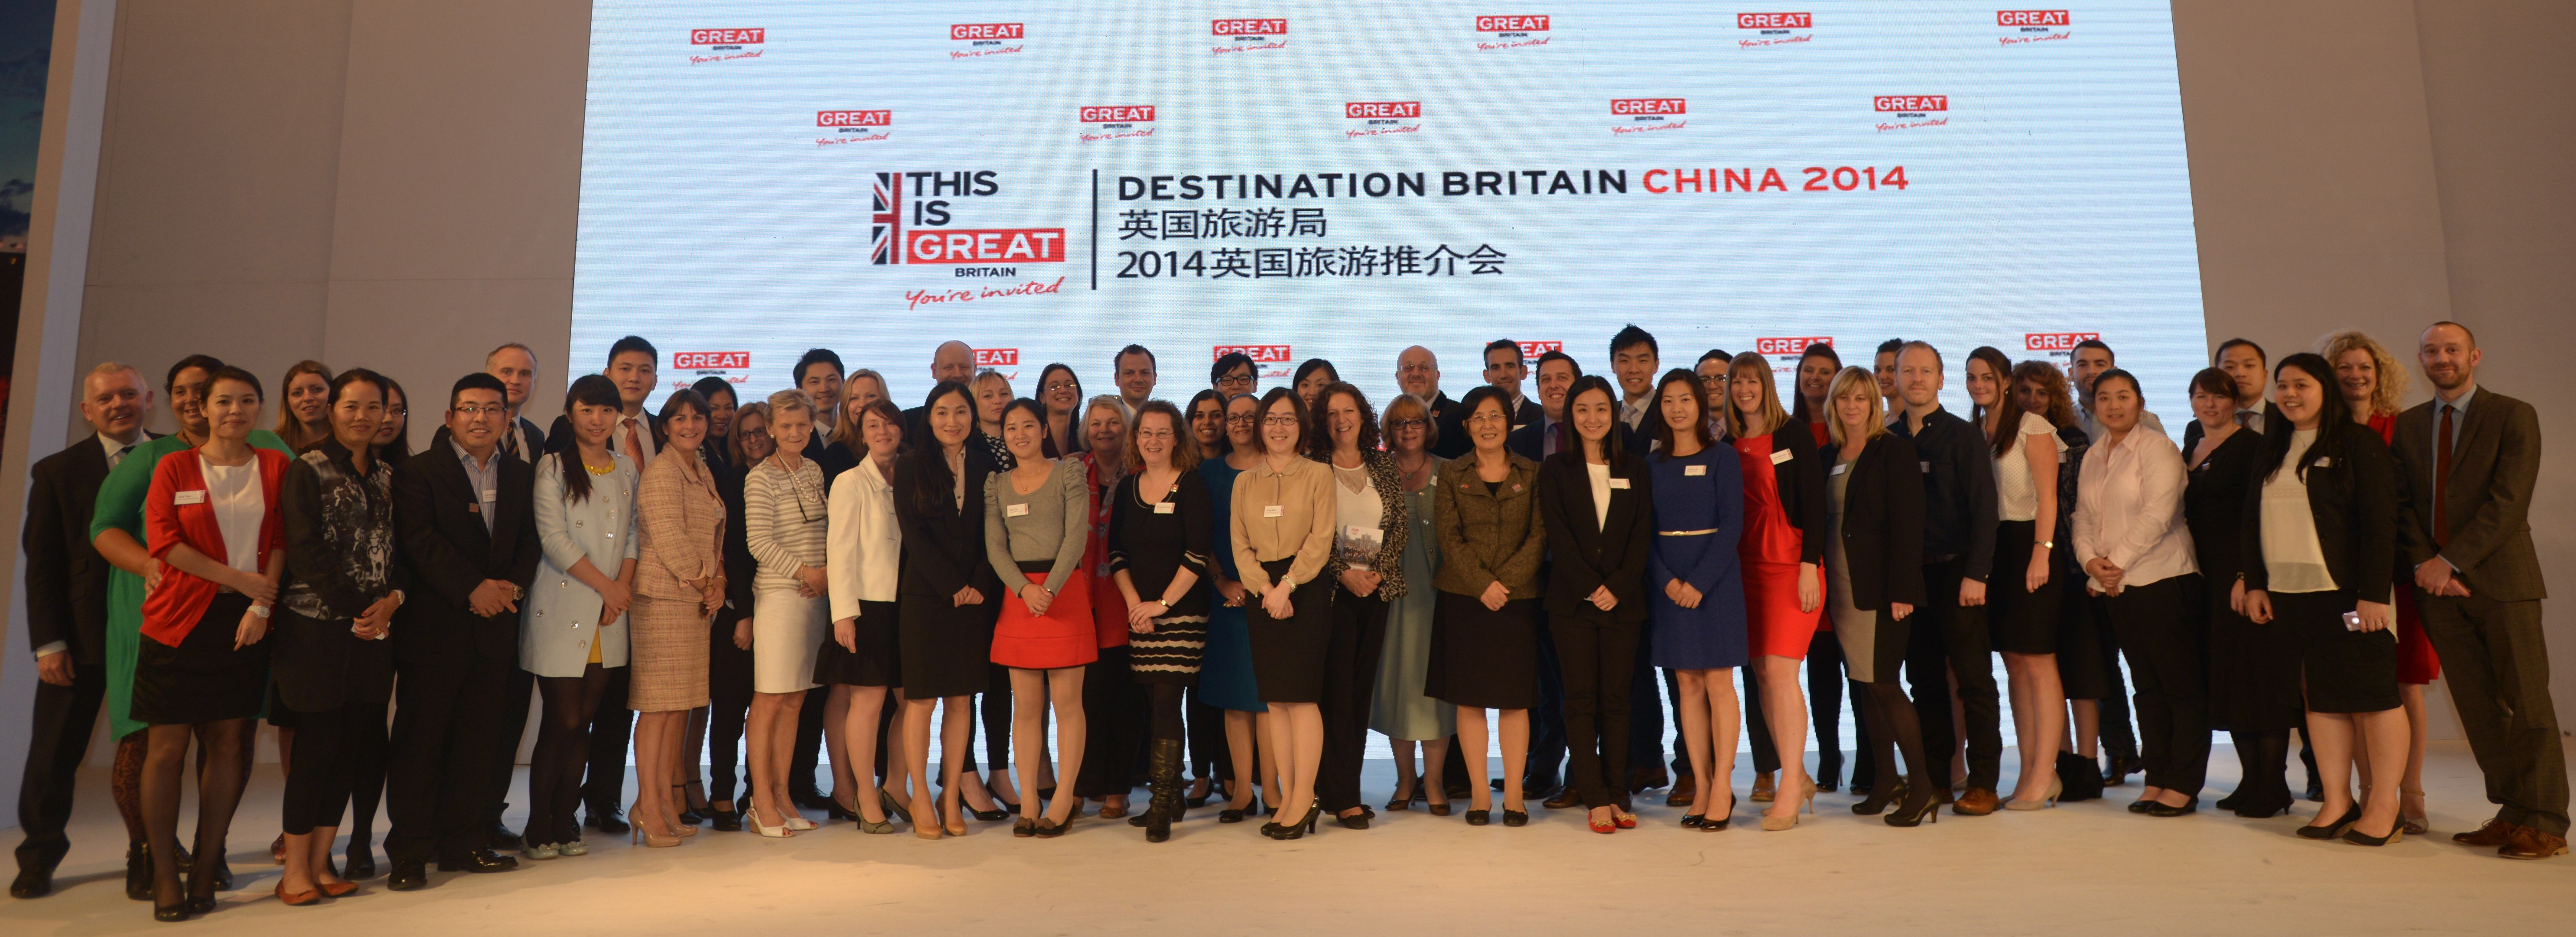 Group shot of staff and attendees of our Destination Britain China 2014 event